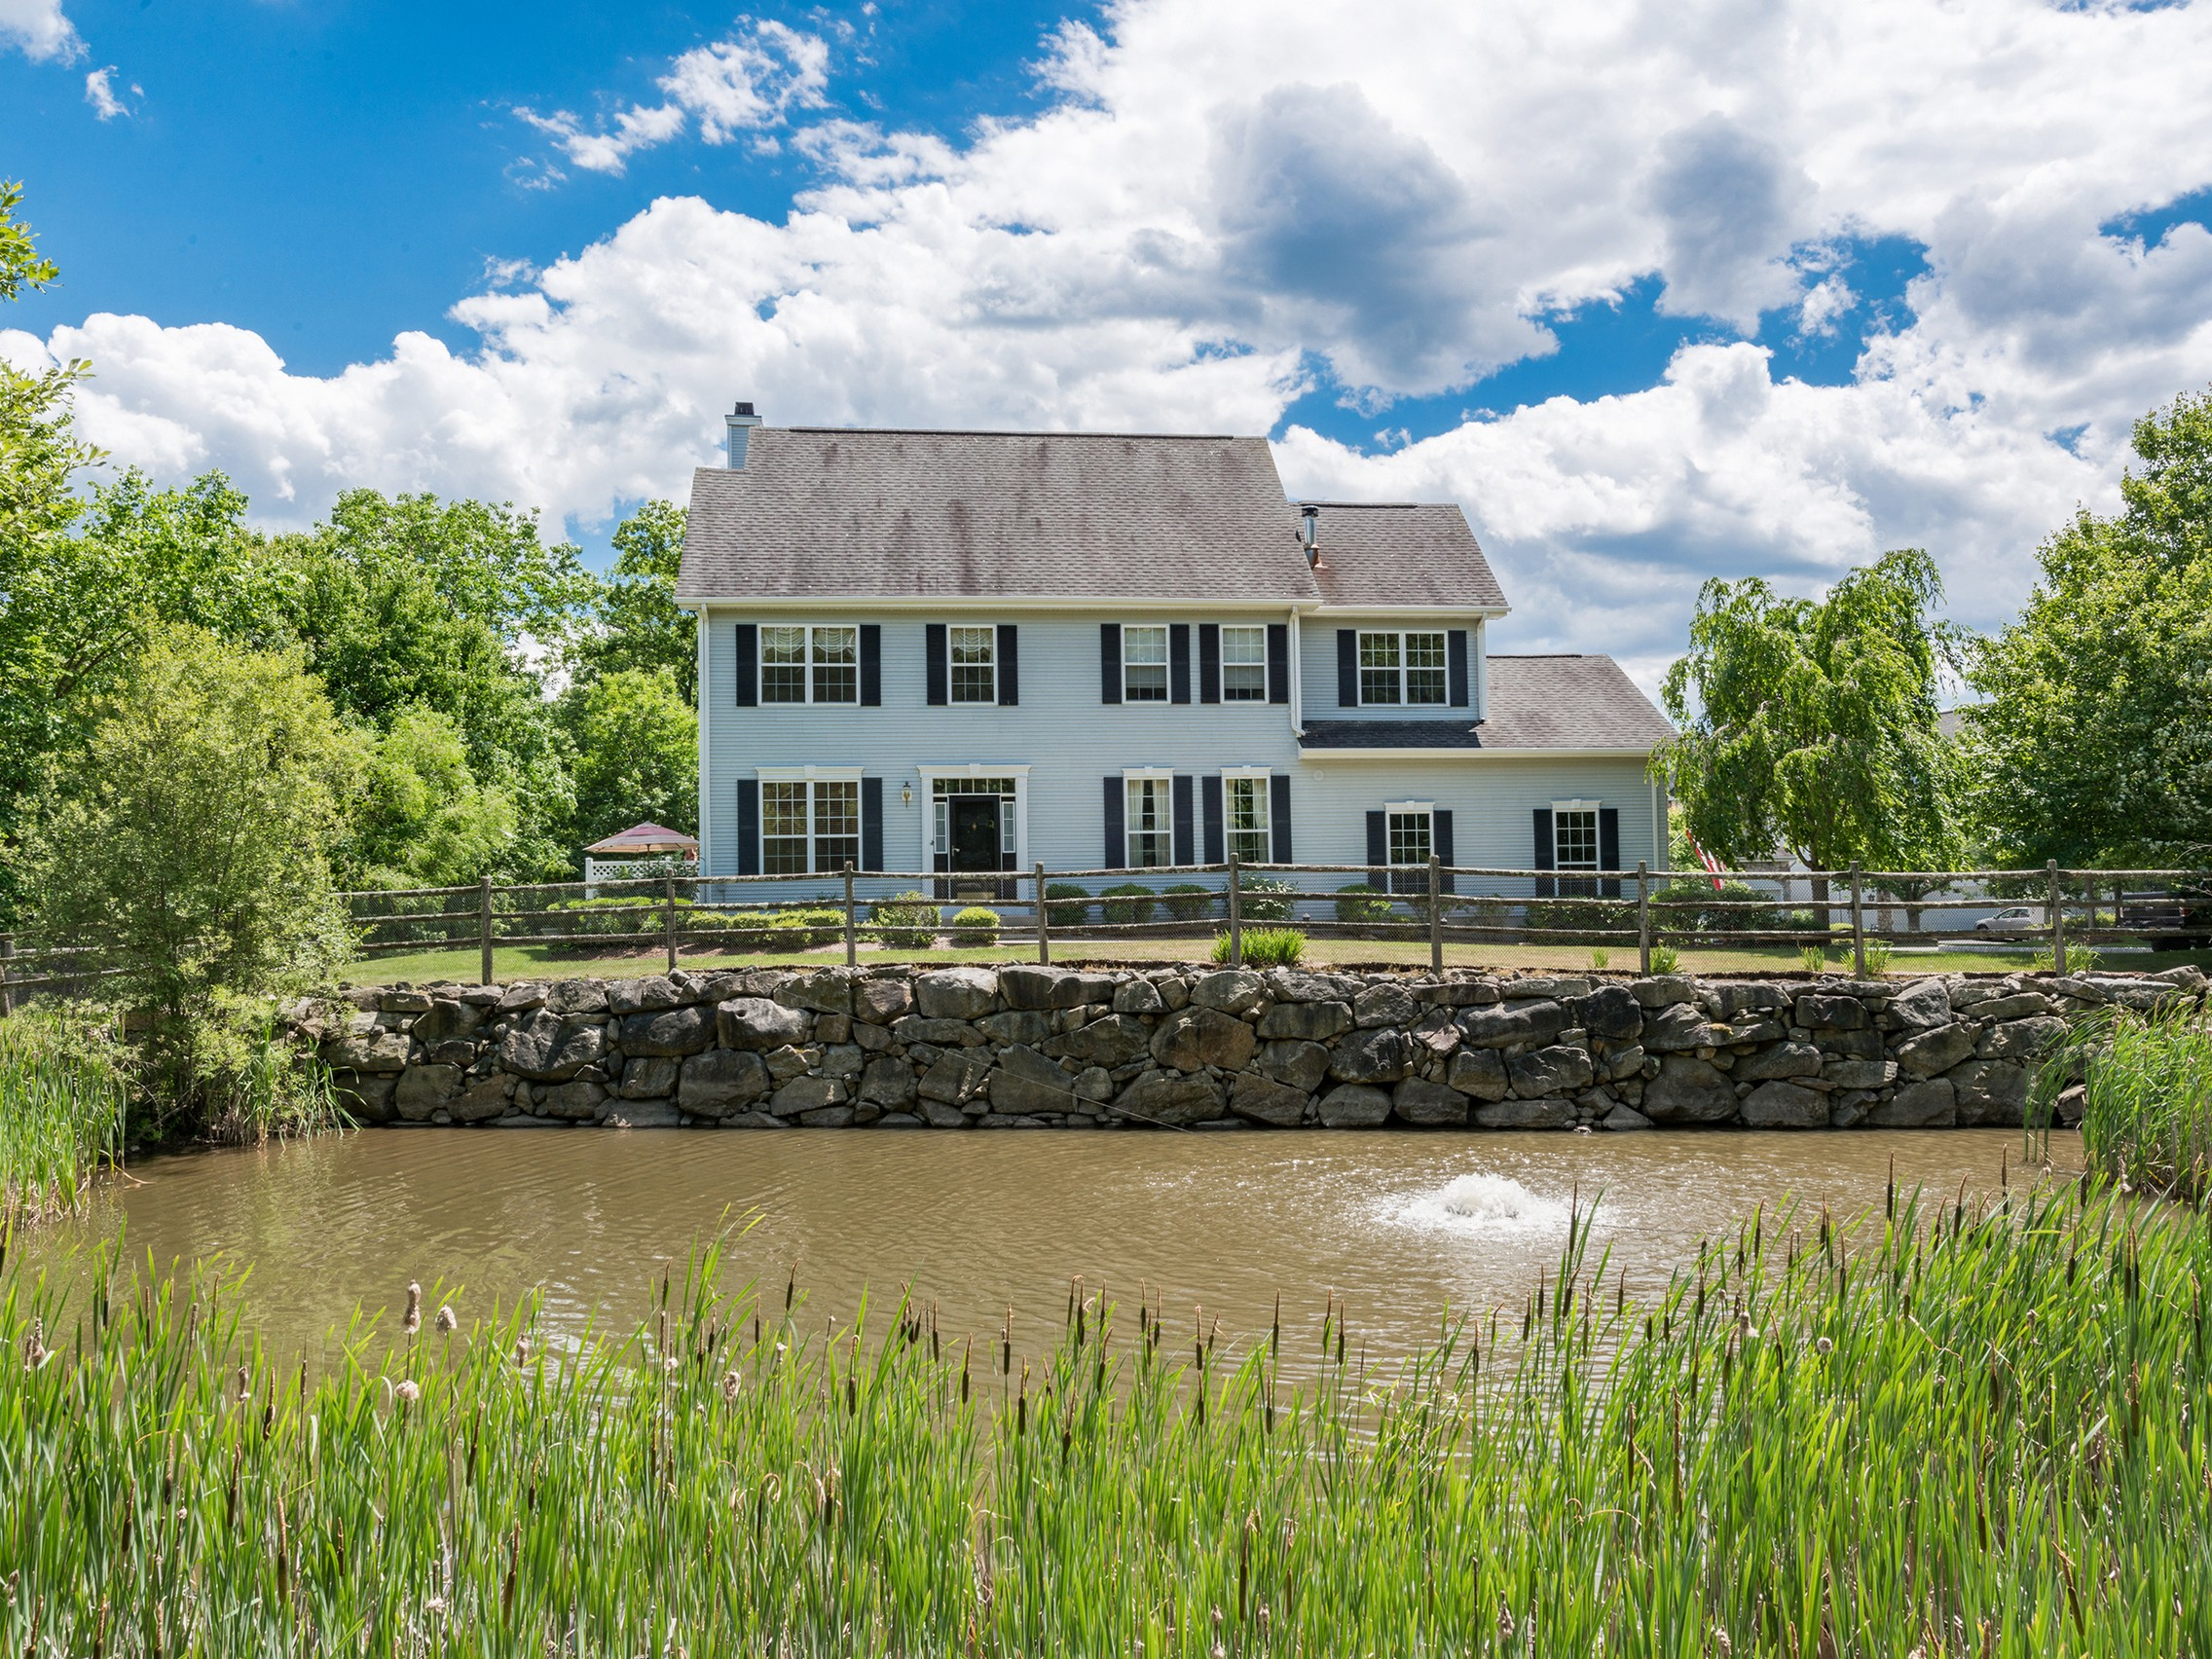 Single Family Home for Sale at Luxurious Town Home 16 Willow Court Tuxedo Park, New York, 10987 United States